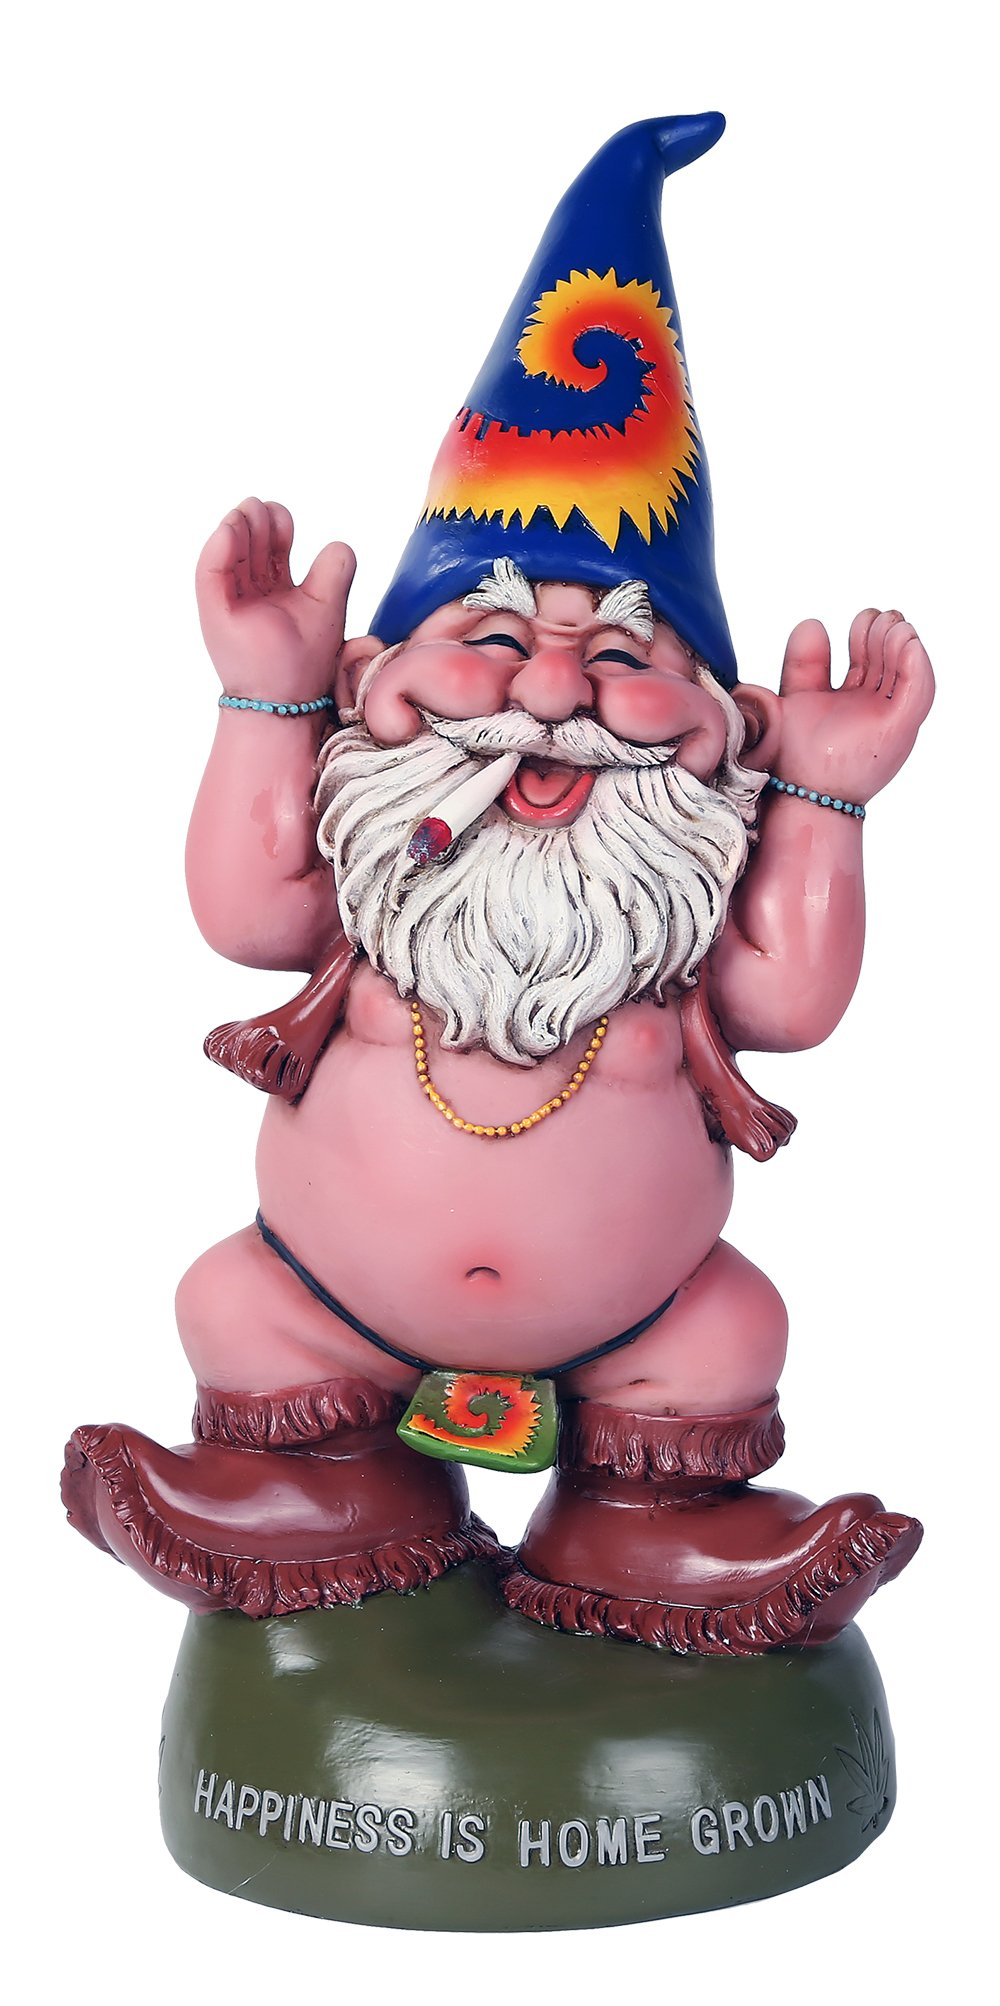 Pacific Giftware Free Spirited Pot Smoking Happiness Is Home Grown Garden Gnome Statue 10H